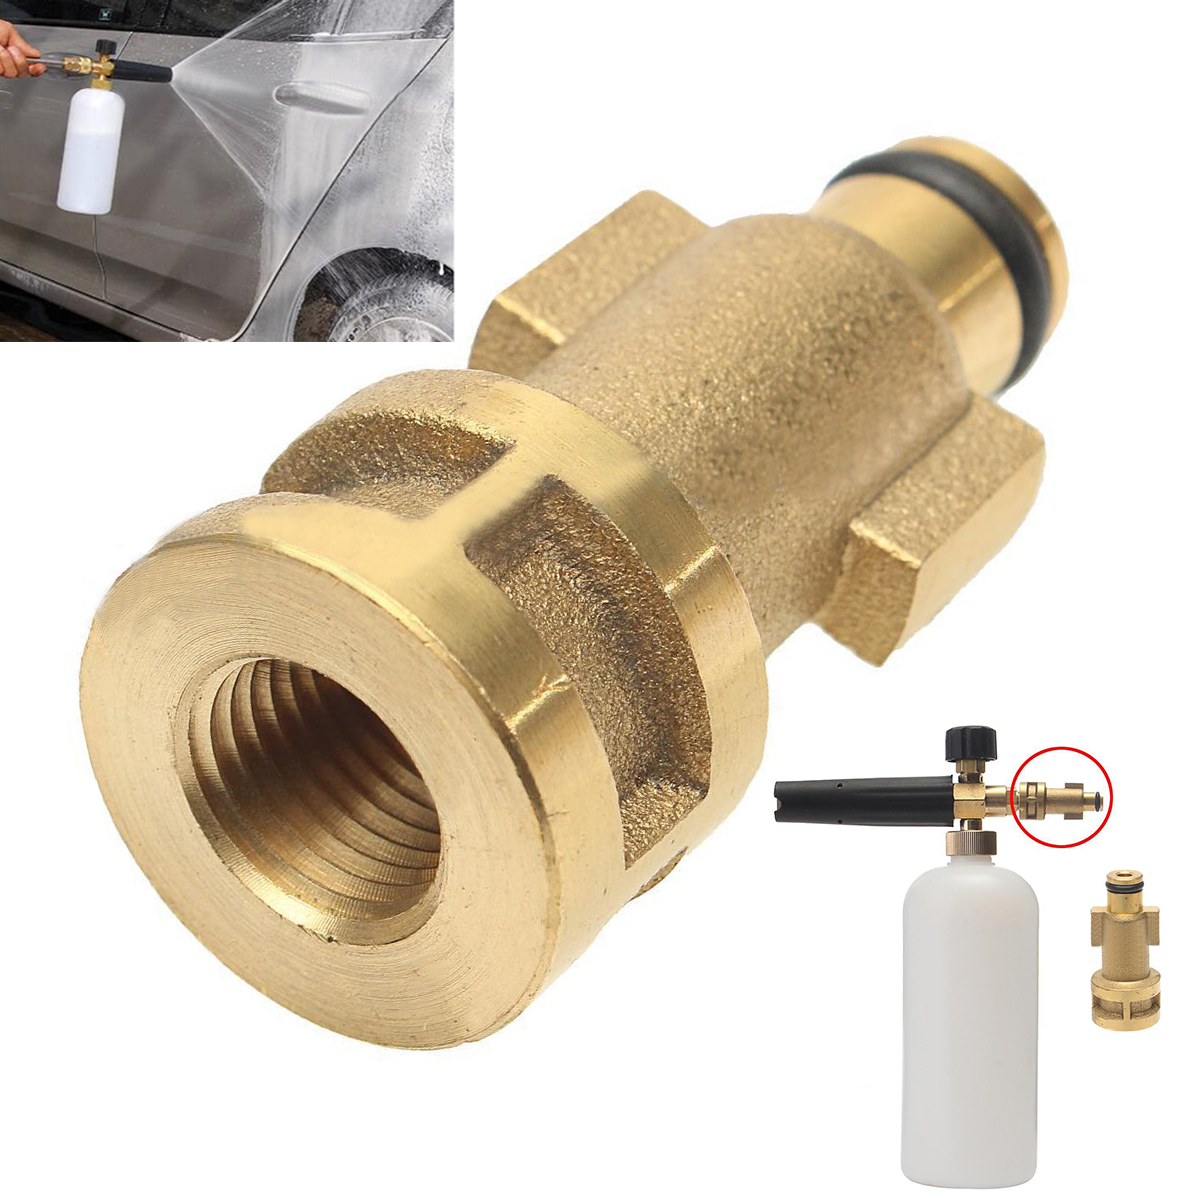 1pc Brass Snow Foam Lance Adapter Quick Connector Mayitr 1/4 Female Washer Adaptor For Pressure Water Pot Car Washing Tools мужская бейсболка cayler